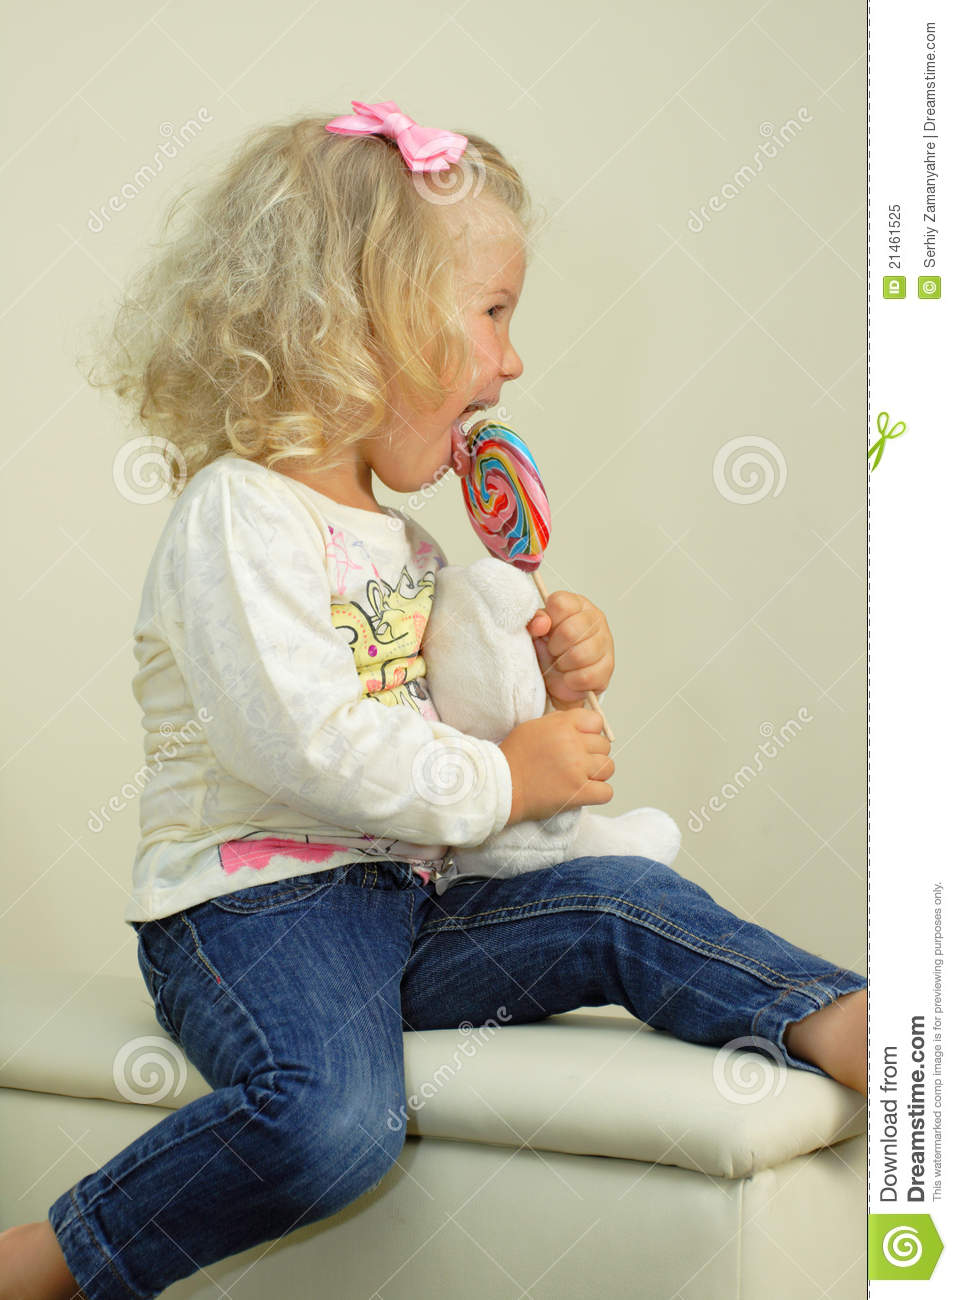 35a29d5c1 Little girl with lollipop stock image. Image of happiness - 21461525